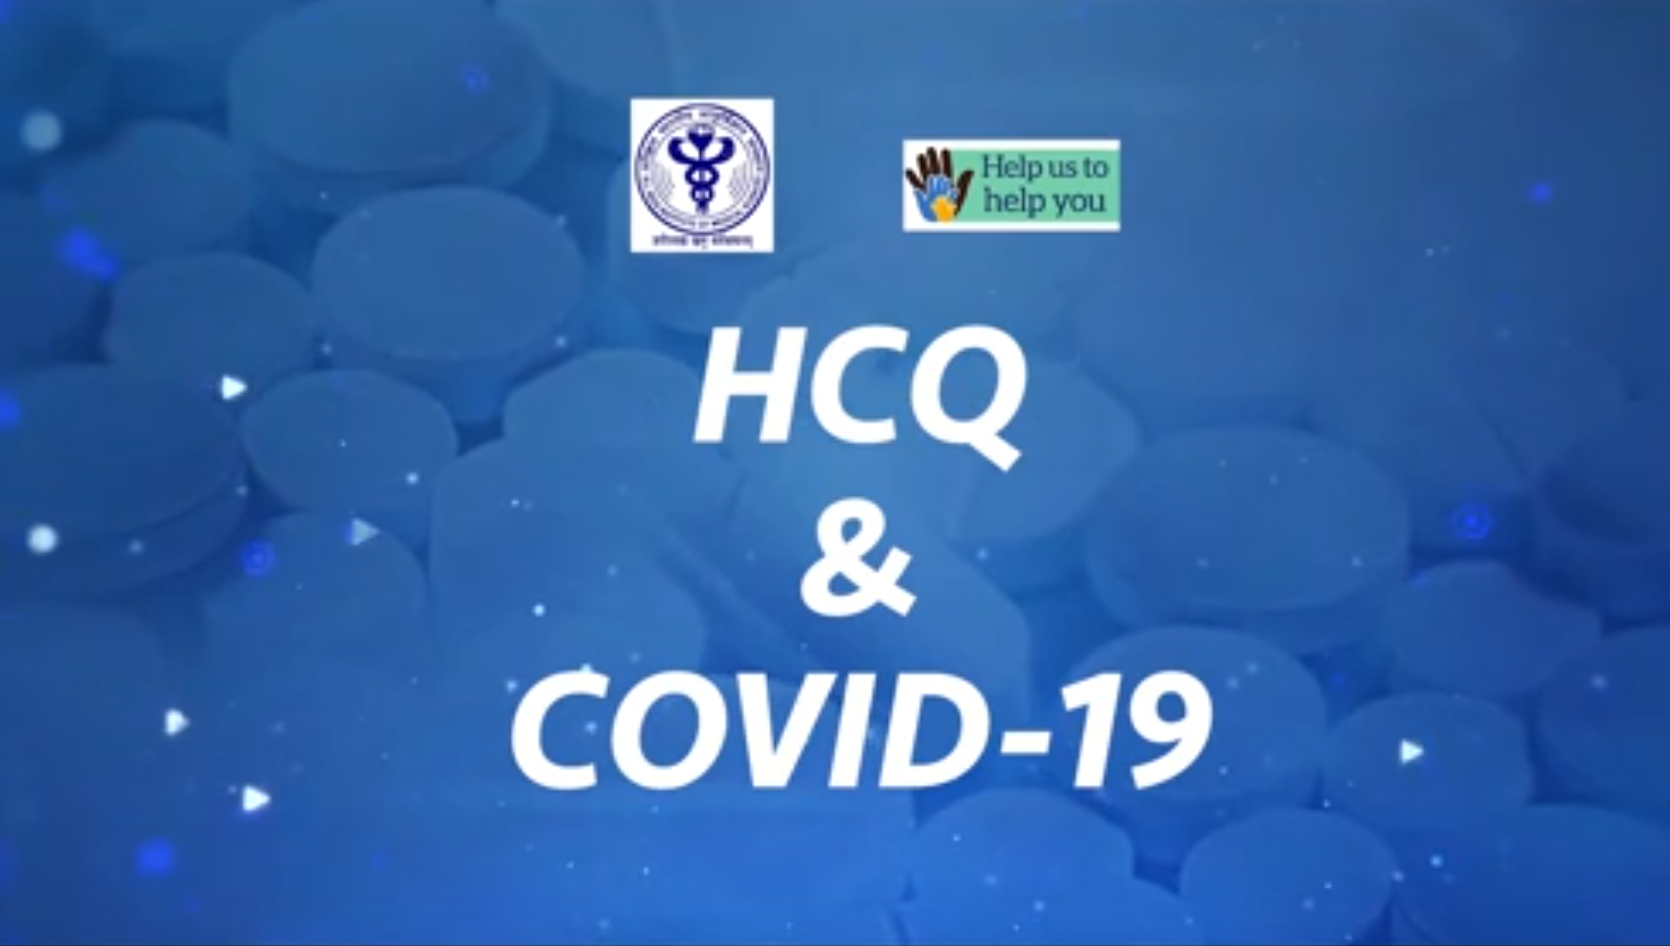 HCQs and COVID-19